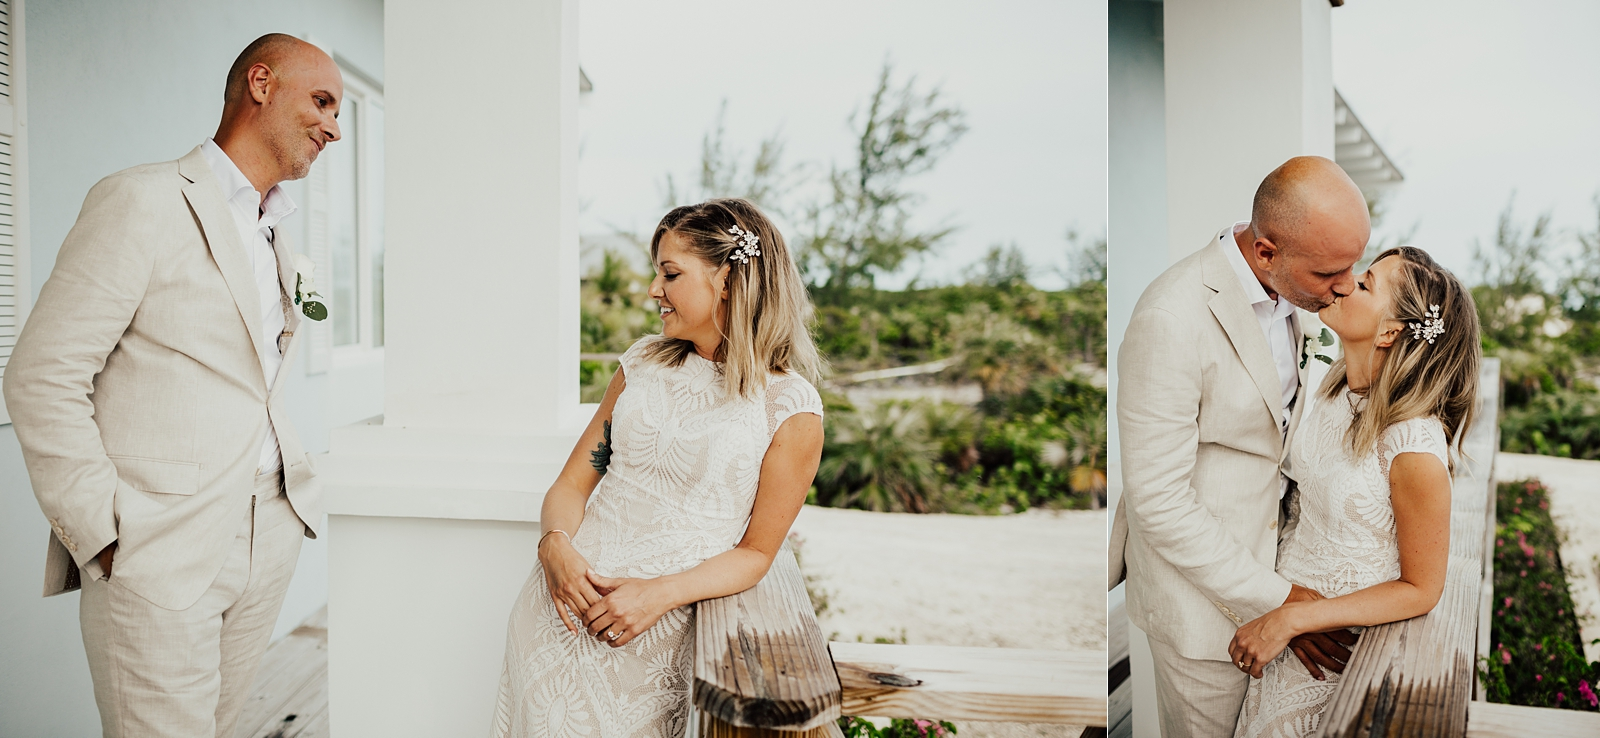 Jenni & Andrew Intimate Beach Destination Wedding in Little Exuma, Bahamas_0494.jpg